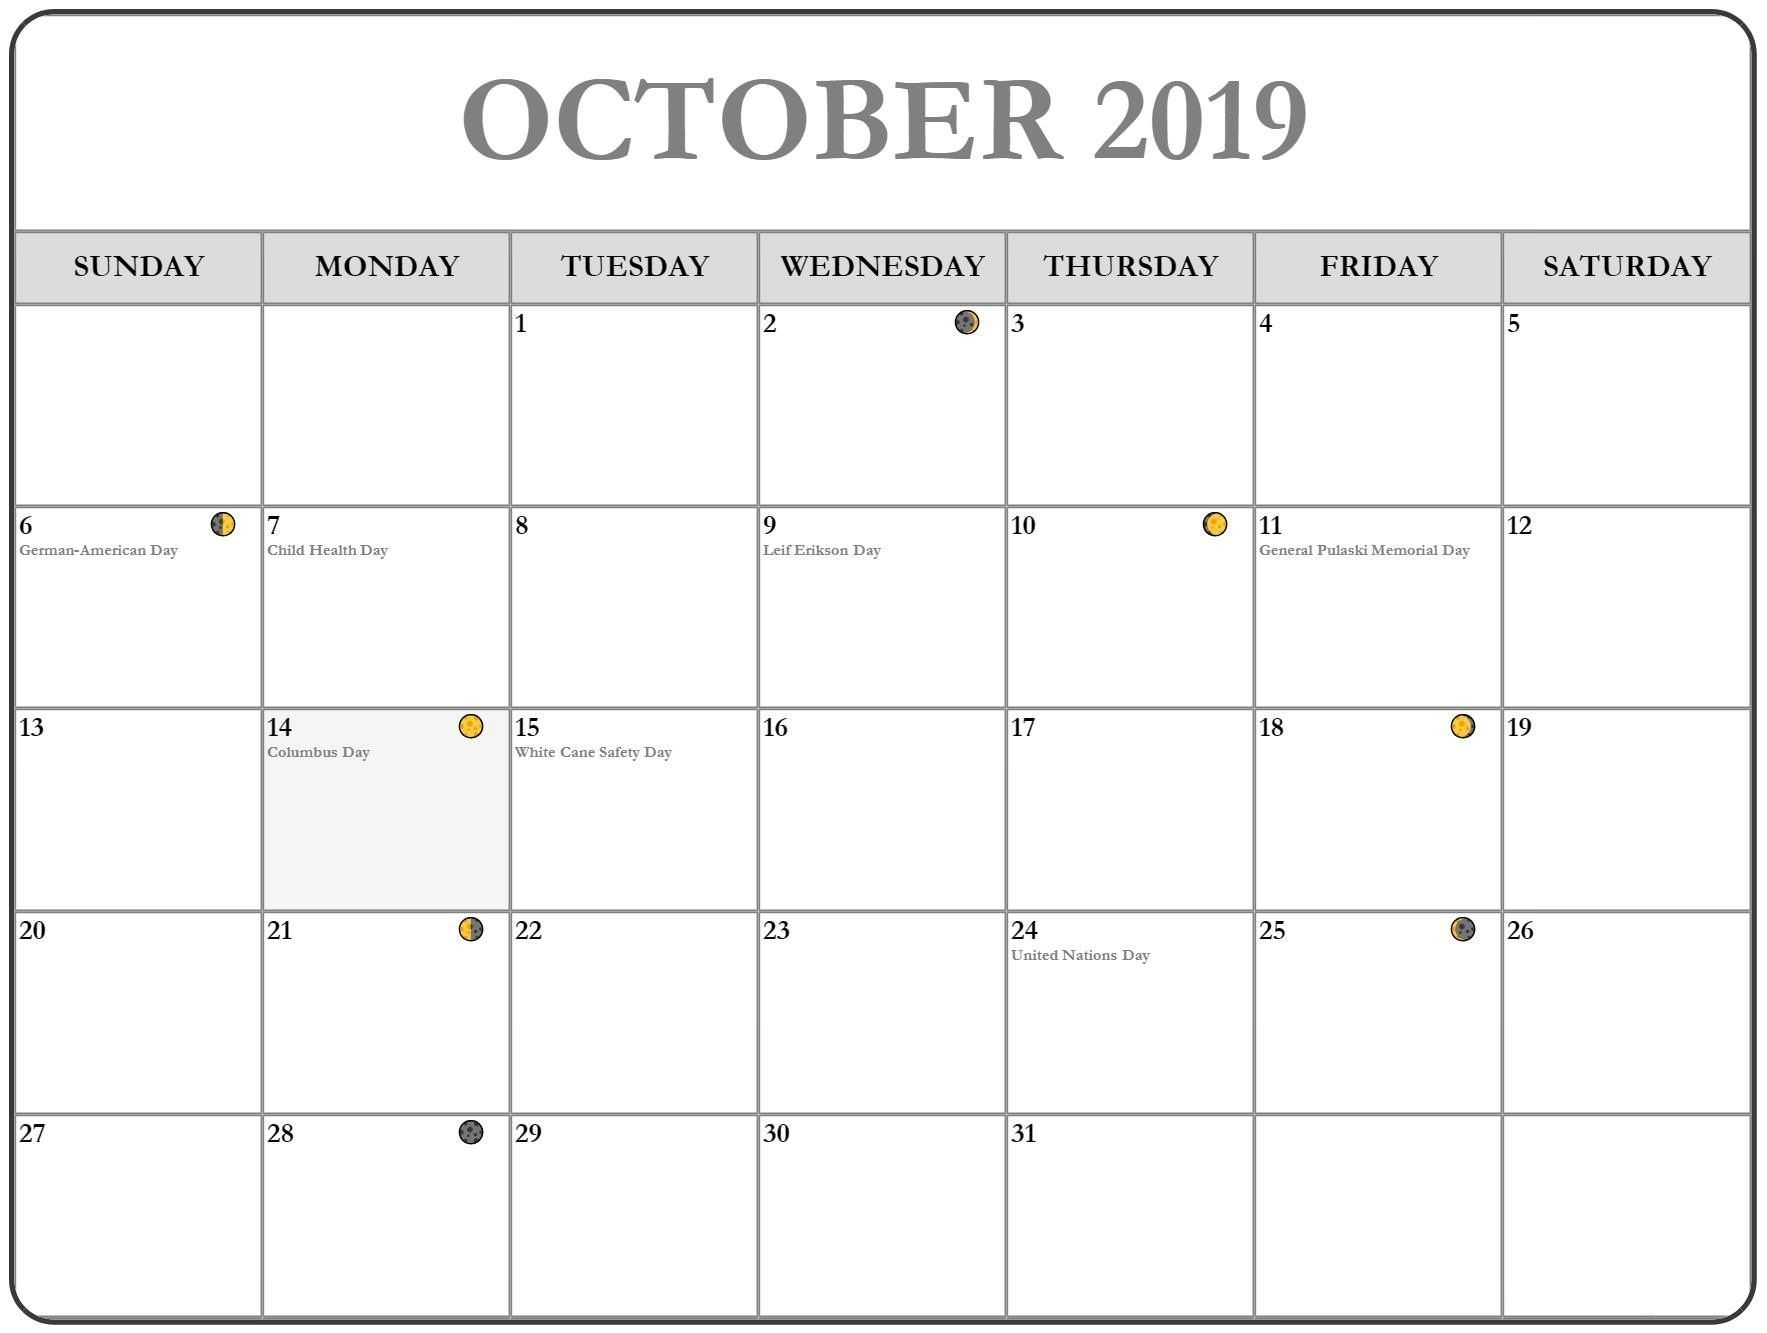 Events October 2019 Calendar With Holiday | December